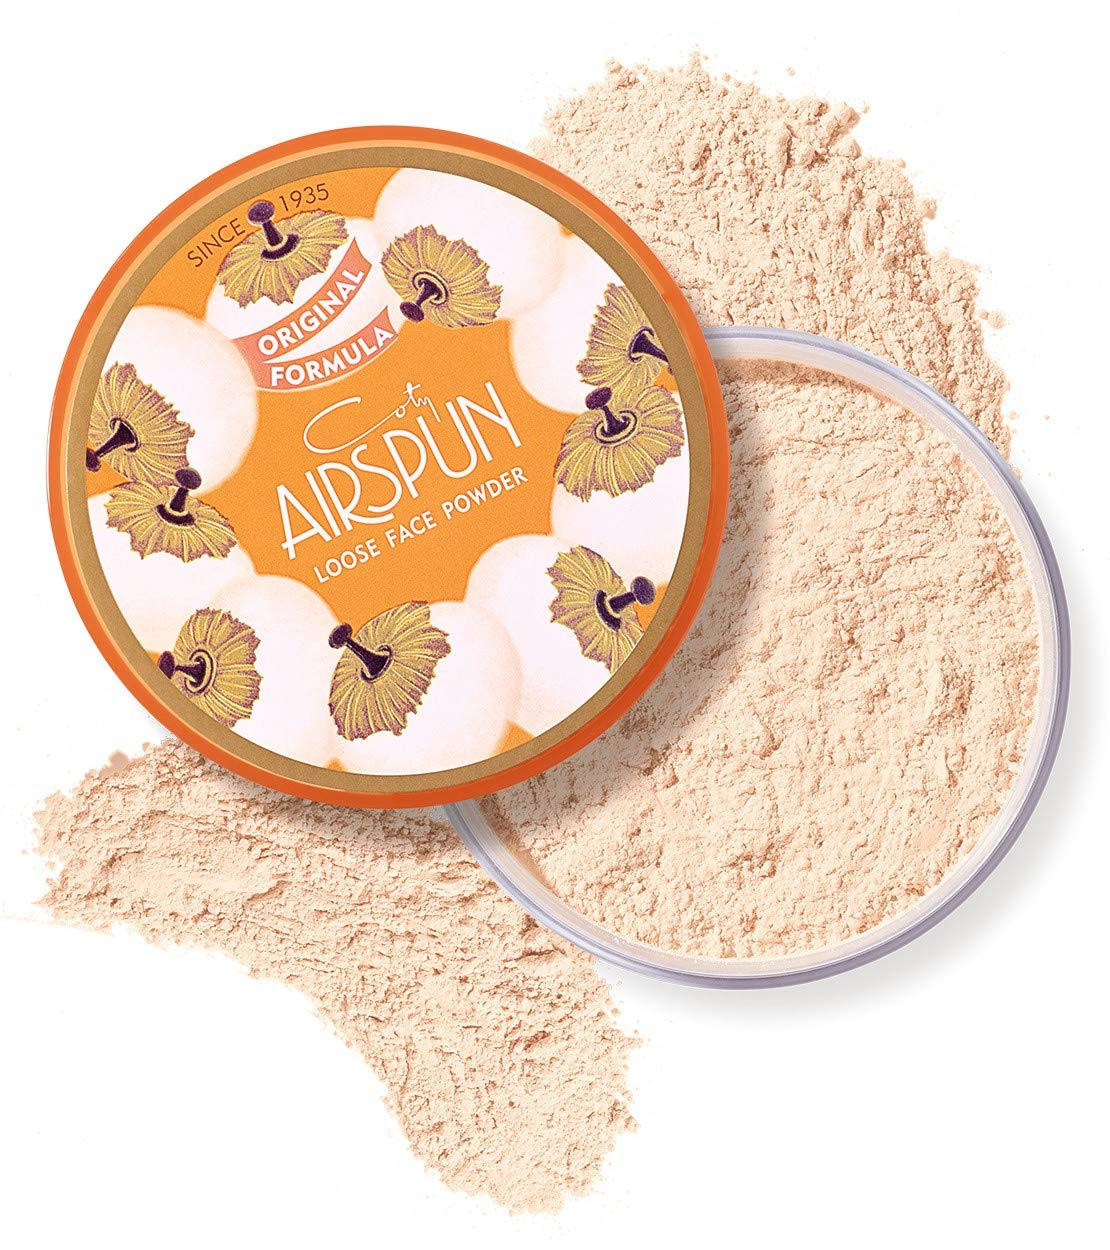 Coty Airspun Loose Face Powder for dry skin